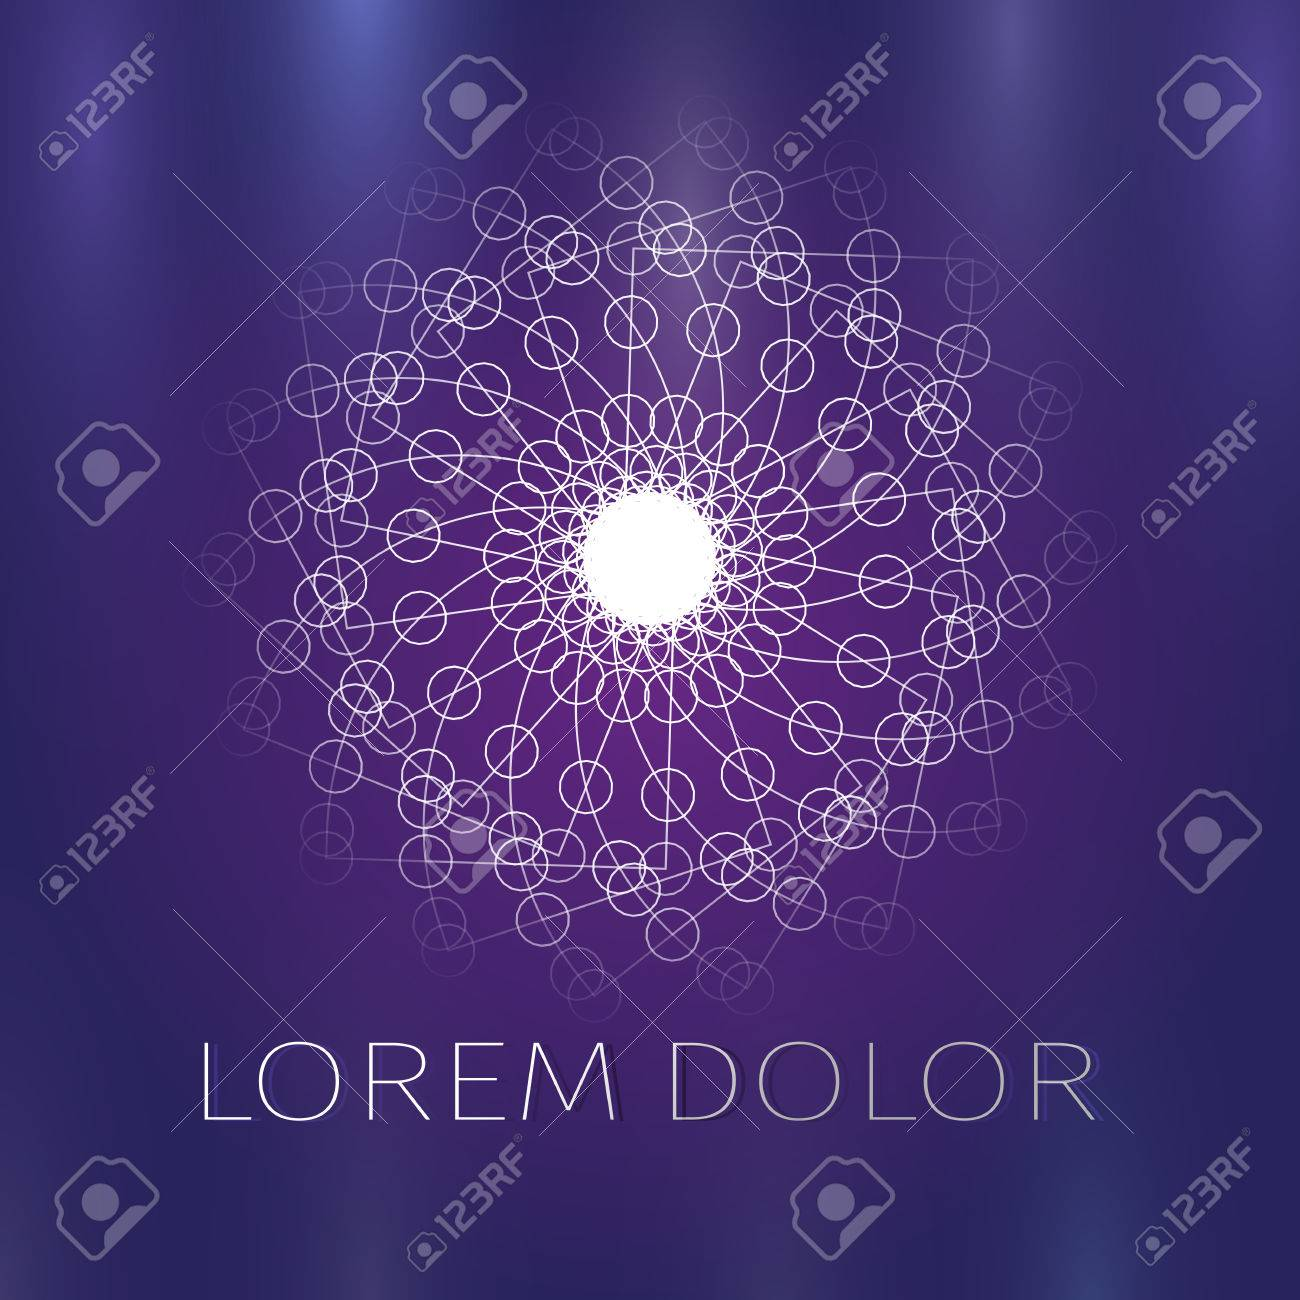 The abstract geometric flower in the Hindu style. Unusual logo of a sun or Lotus flower on a purple background - 84328172